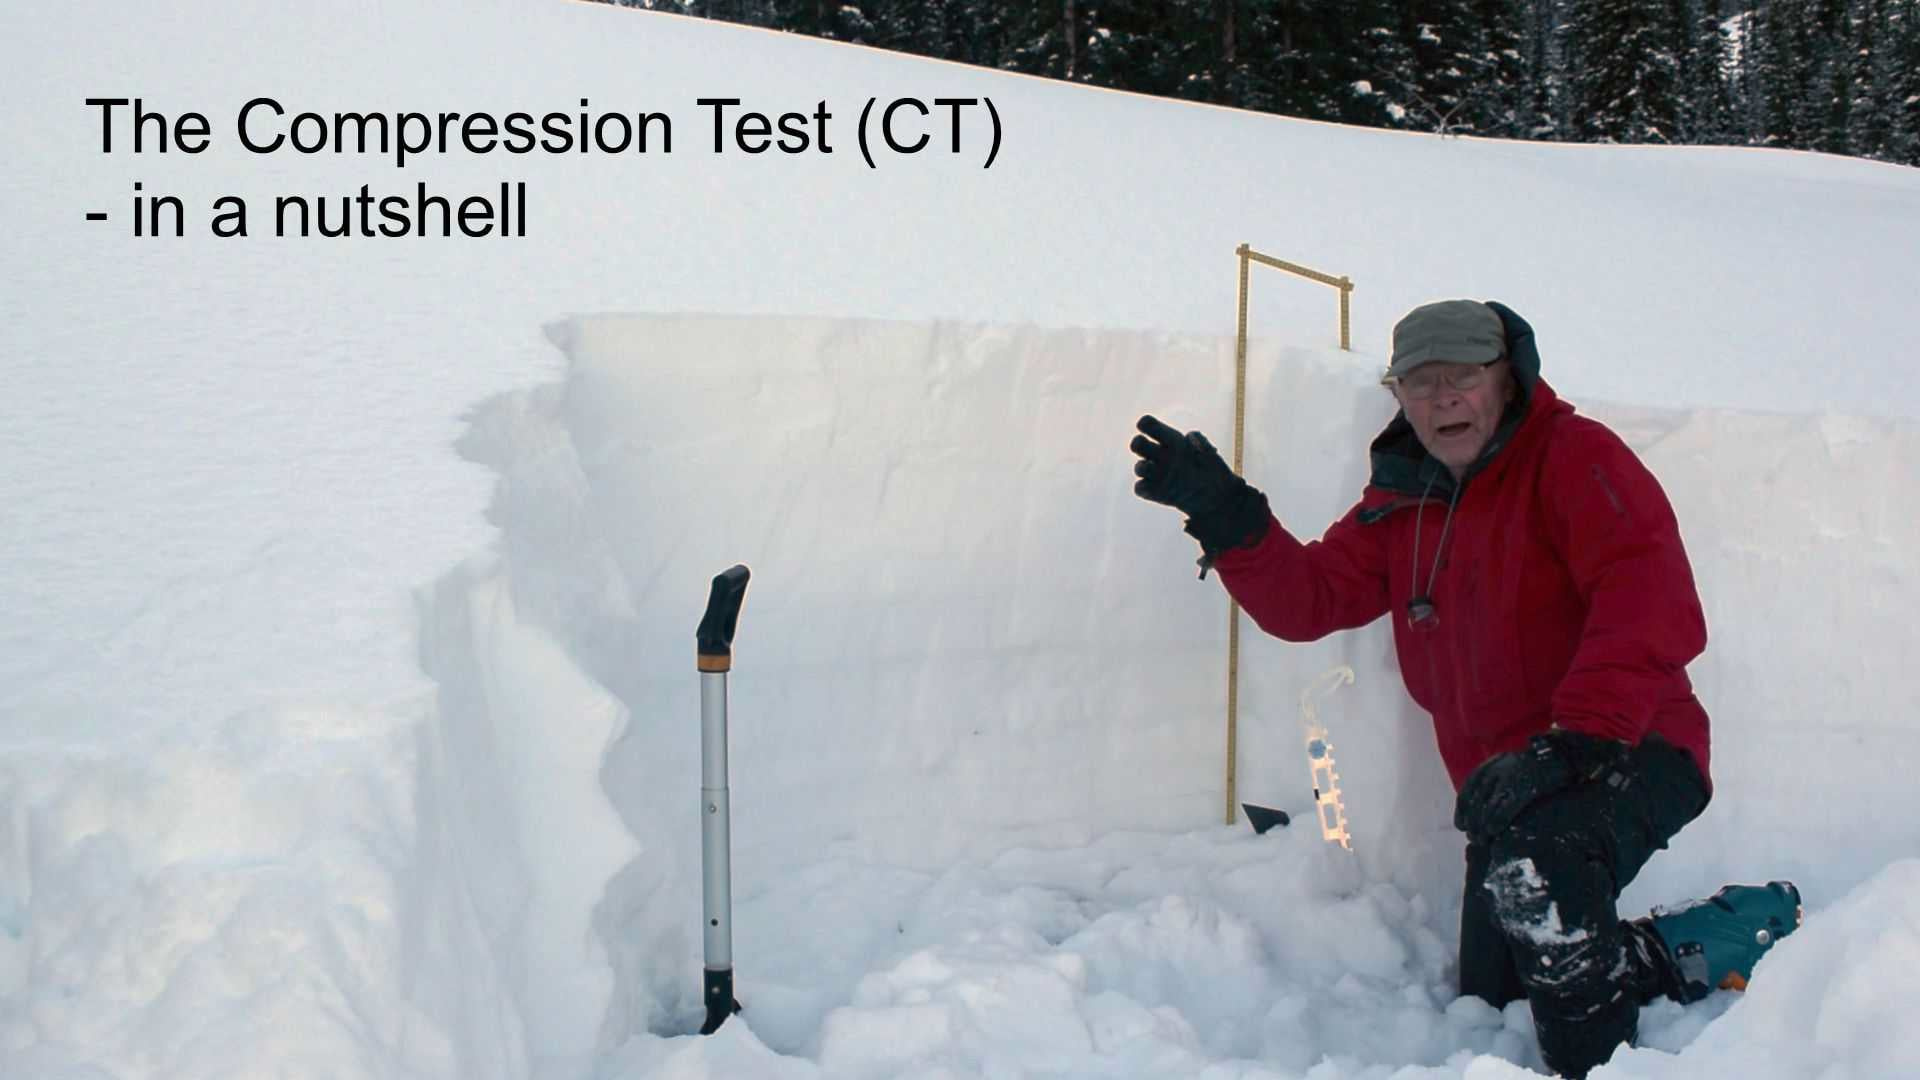 The Compression Test (CT) in a nutshell